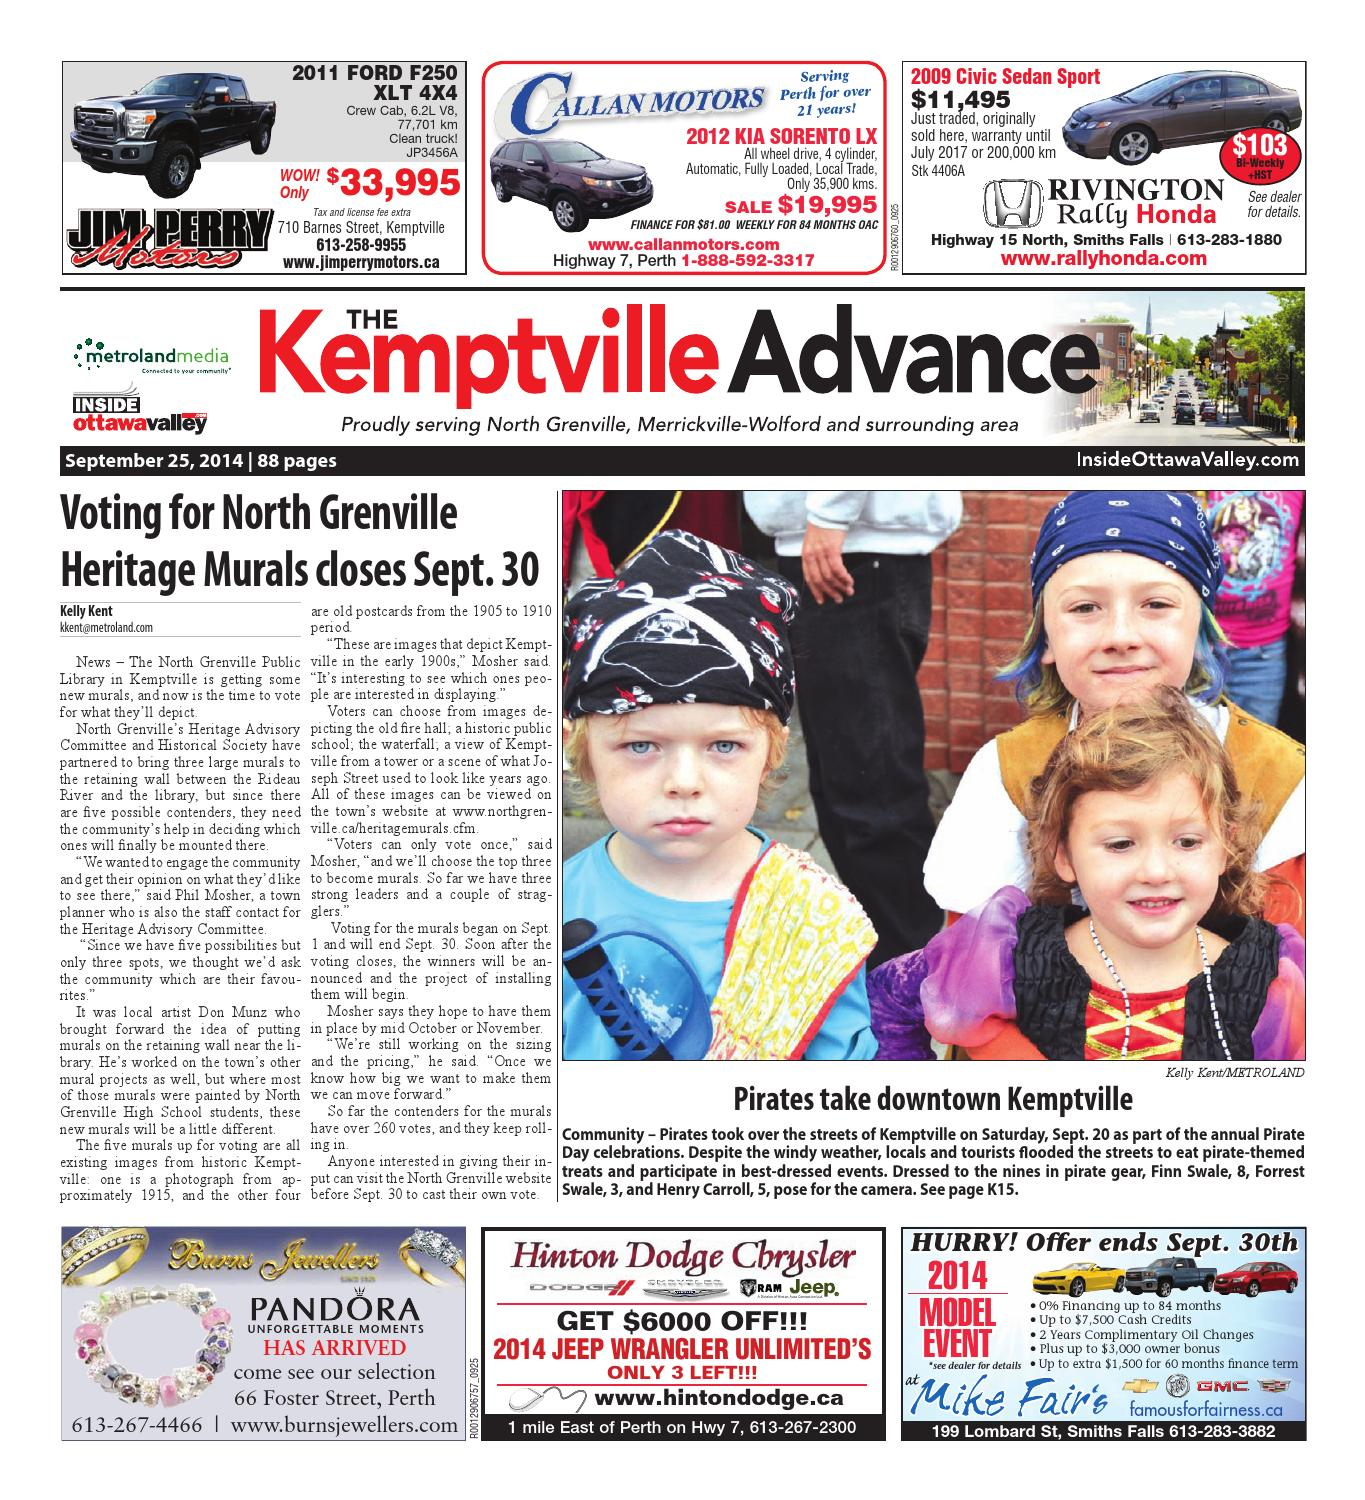 Kemptville092514 by Metroland East - Kemptville Advance - issuu f7f8ebb8f24